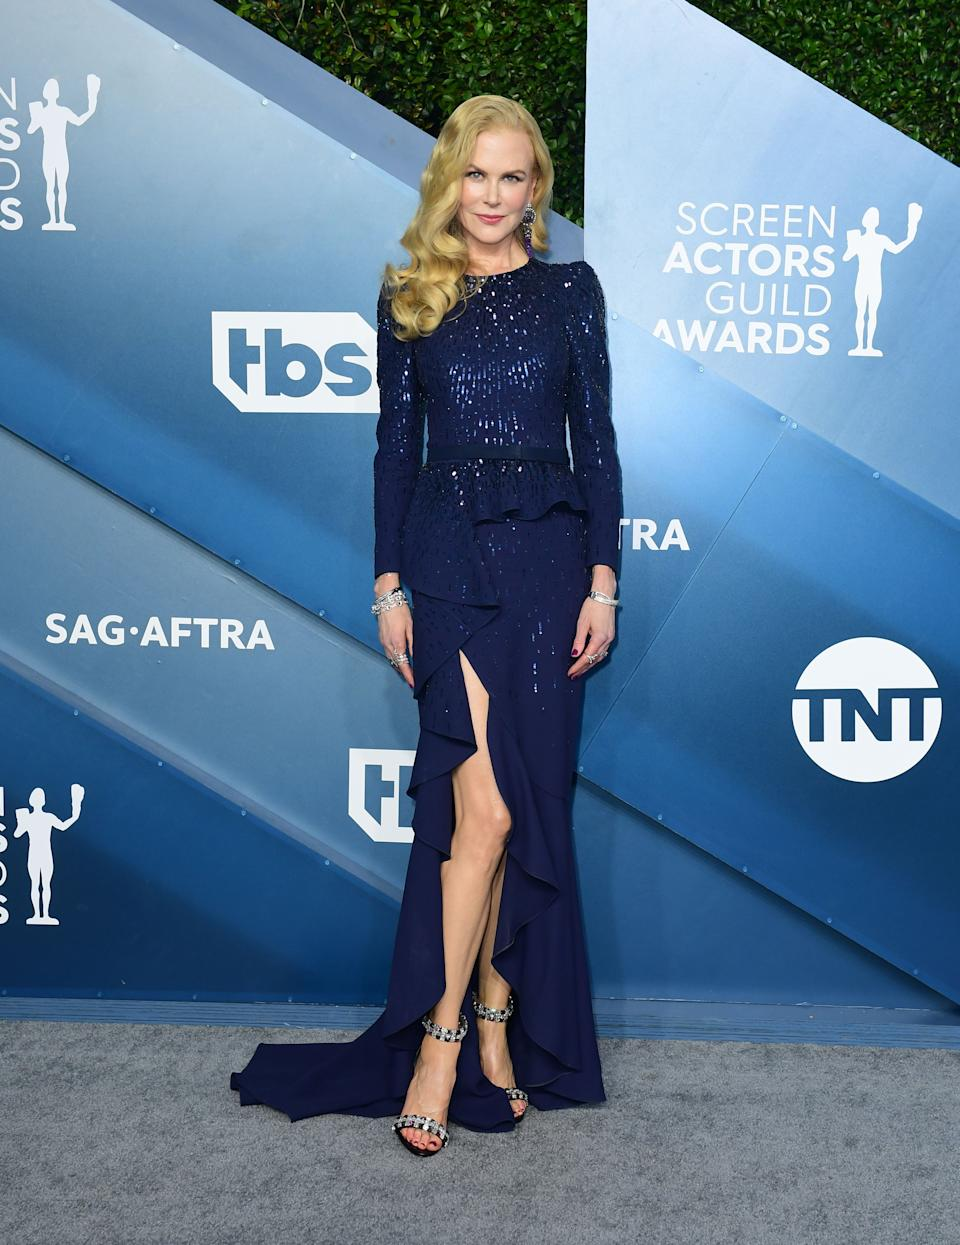 """The """"Big Little Lies"""" and """"Bombshell"""" star looked regal in navy Michael Kors with ruffled detail and thigh-high slit."""